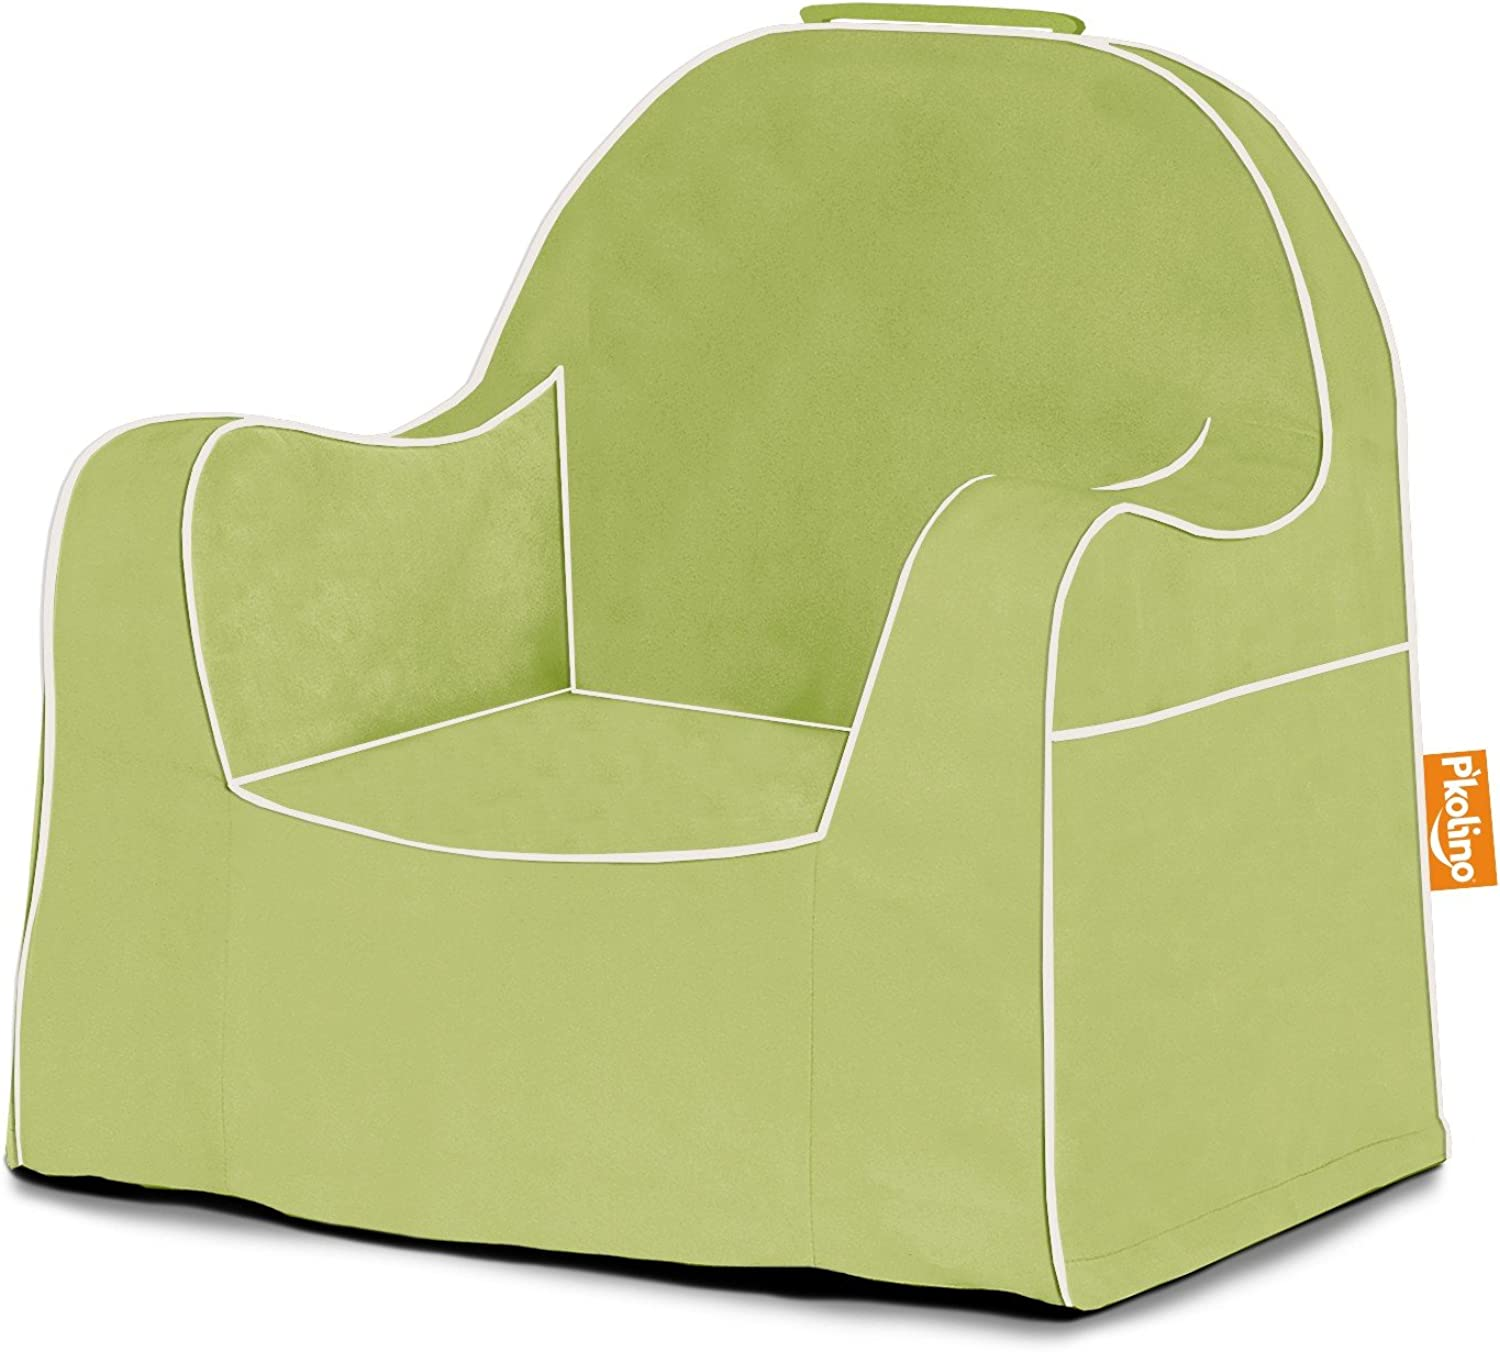 P'kolino PKFFLRSLGR Little Reader Light Green